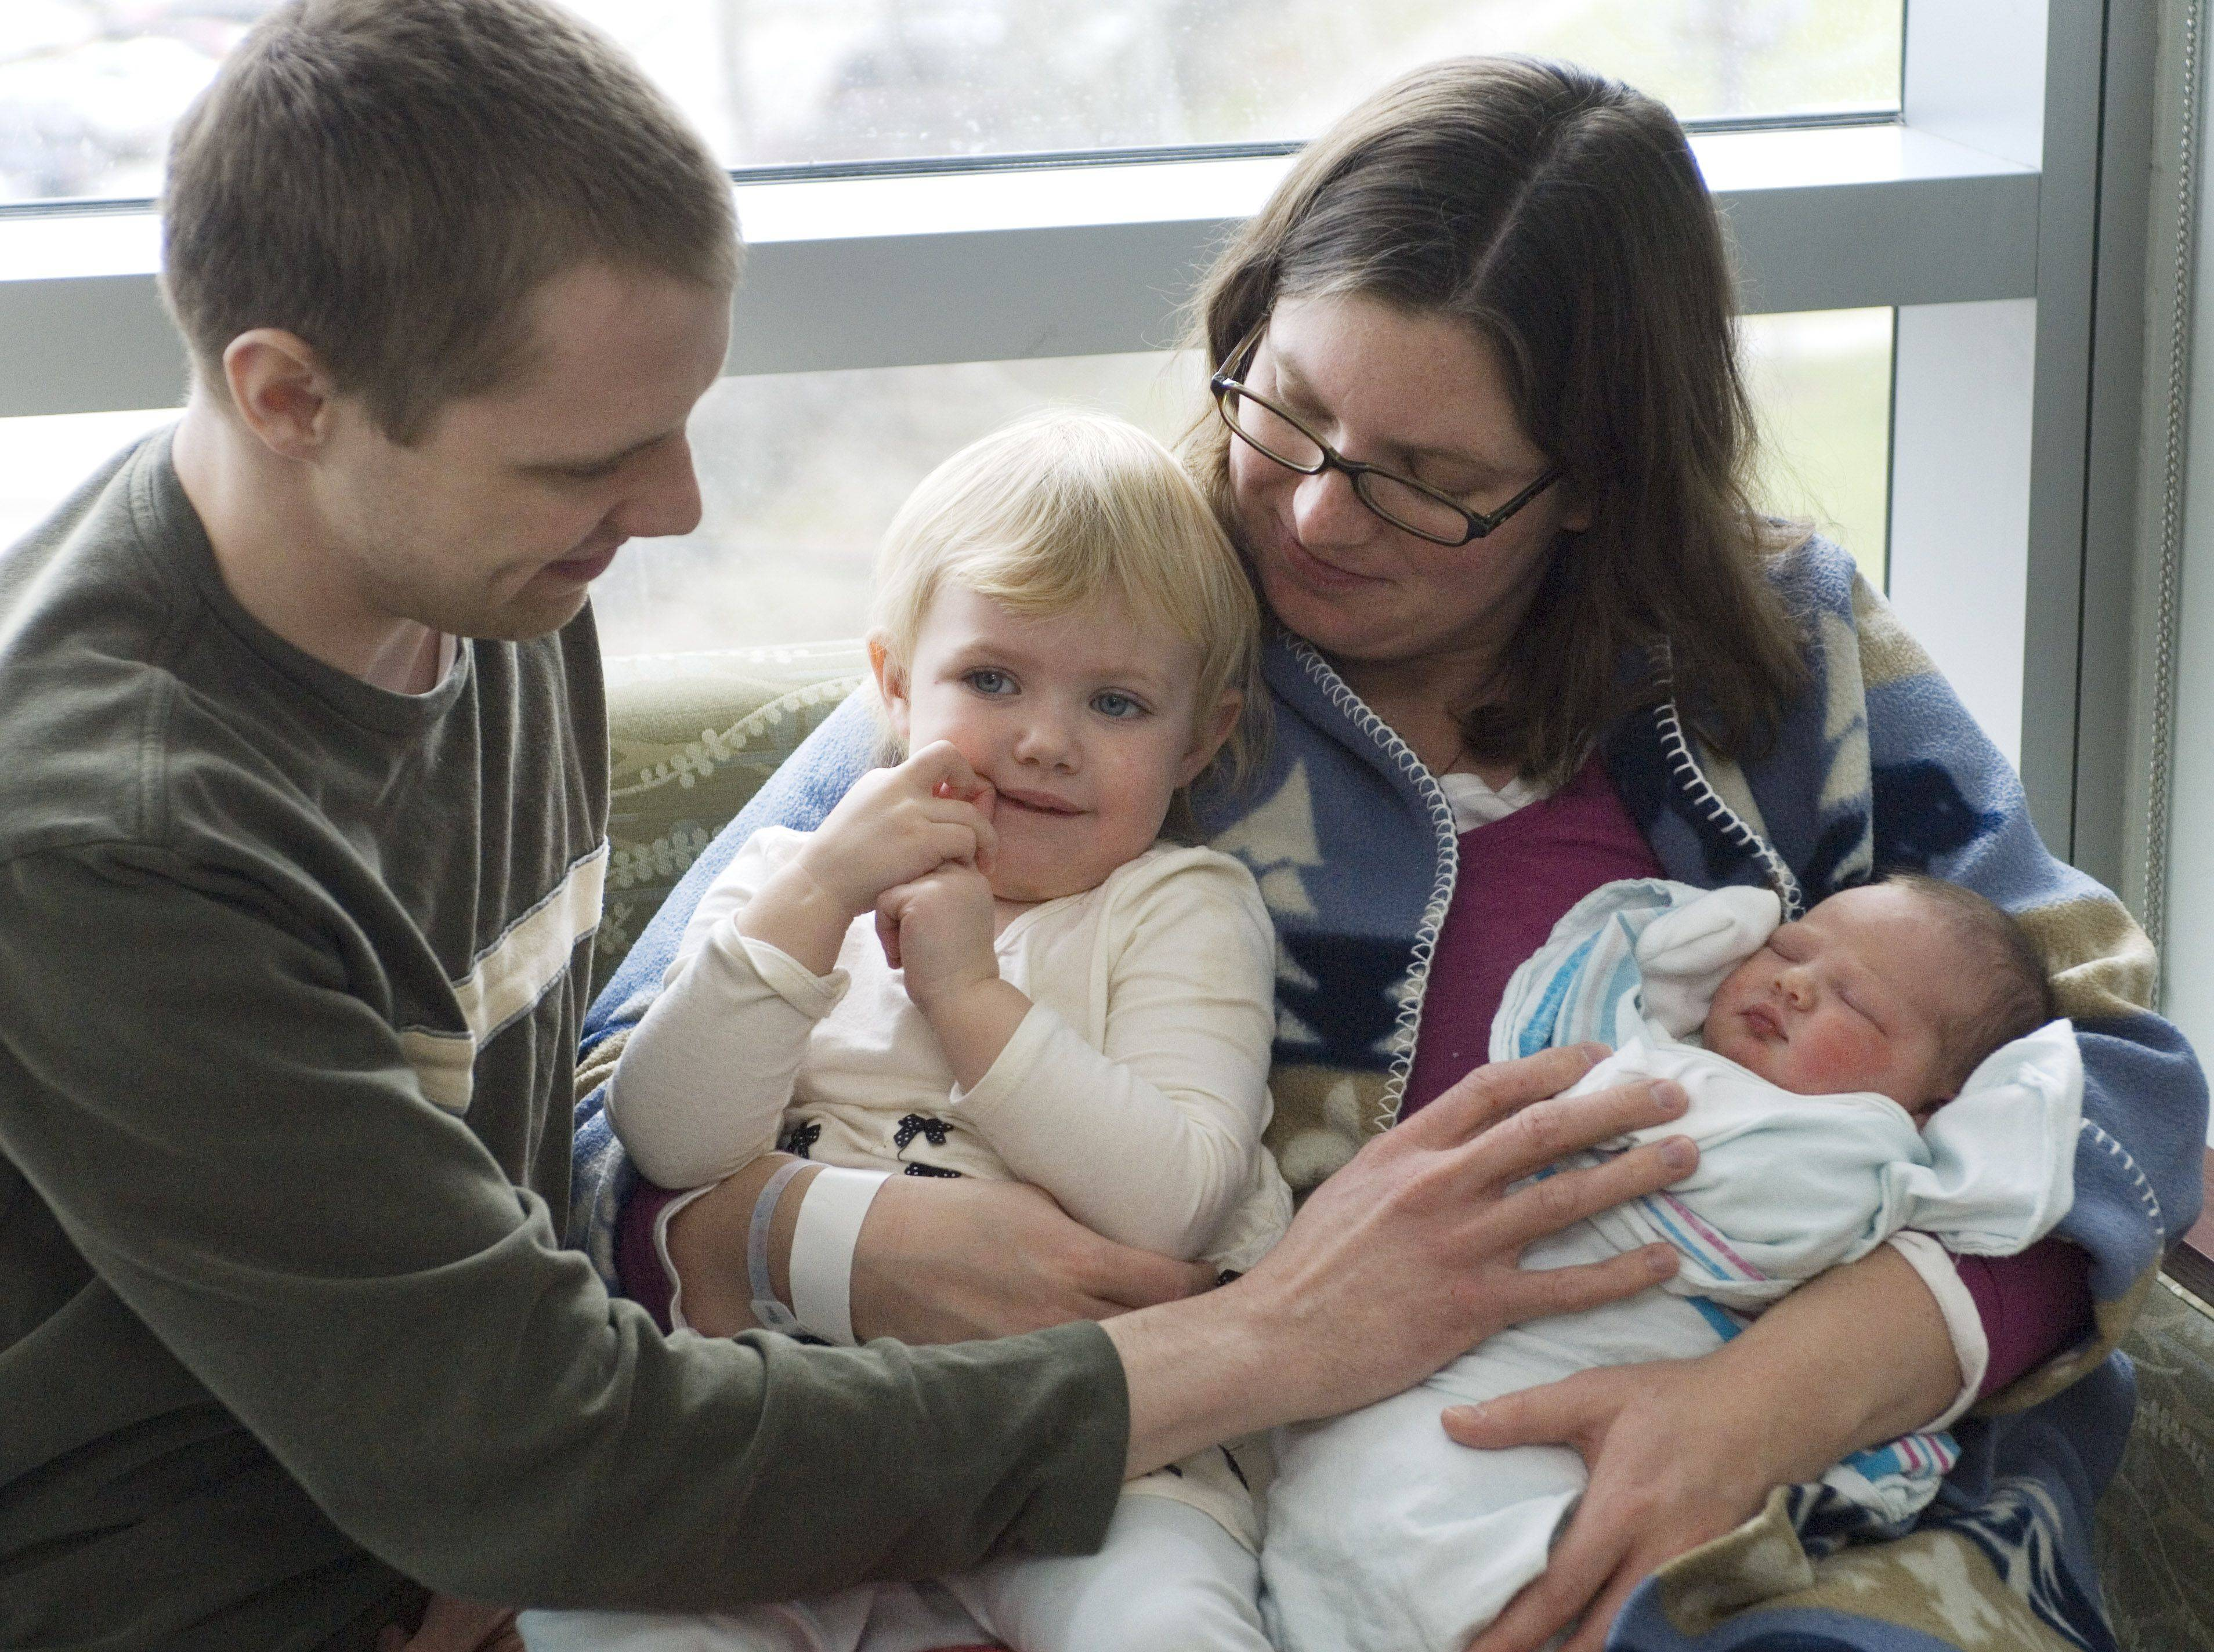 Ron and Rosie Haaker enjoy the arrival of newborn Mary Haaker along with Mary's sister Molly, 2, at Northwest Community Hospital Saturday morning.